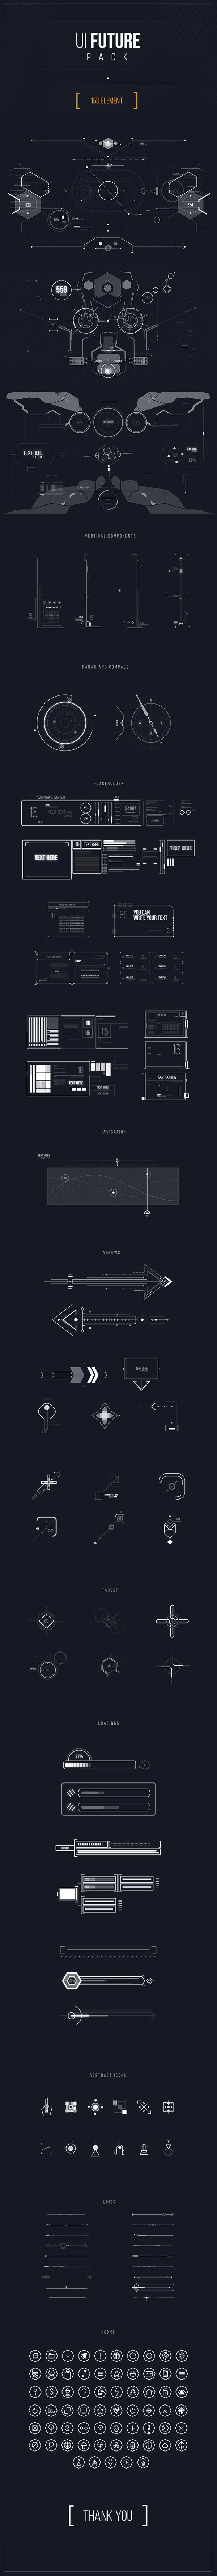 UI FUTURE PACK on Behance